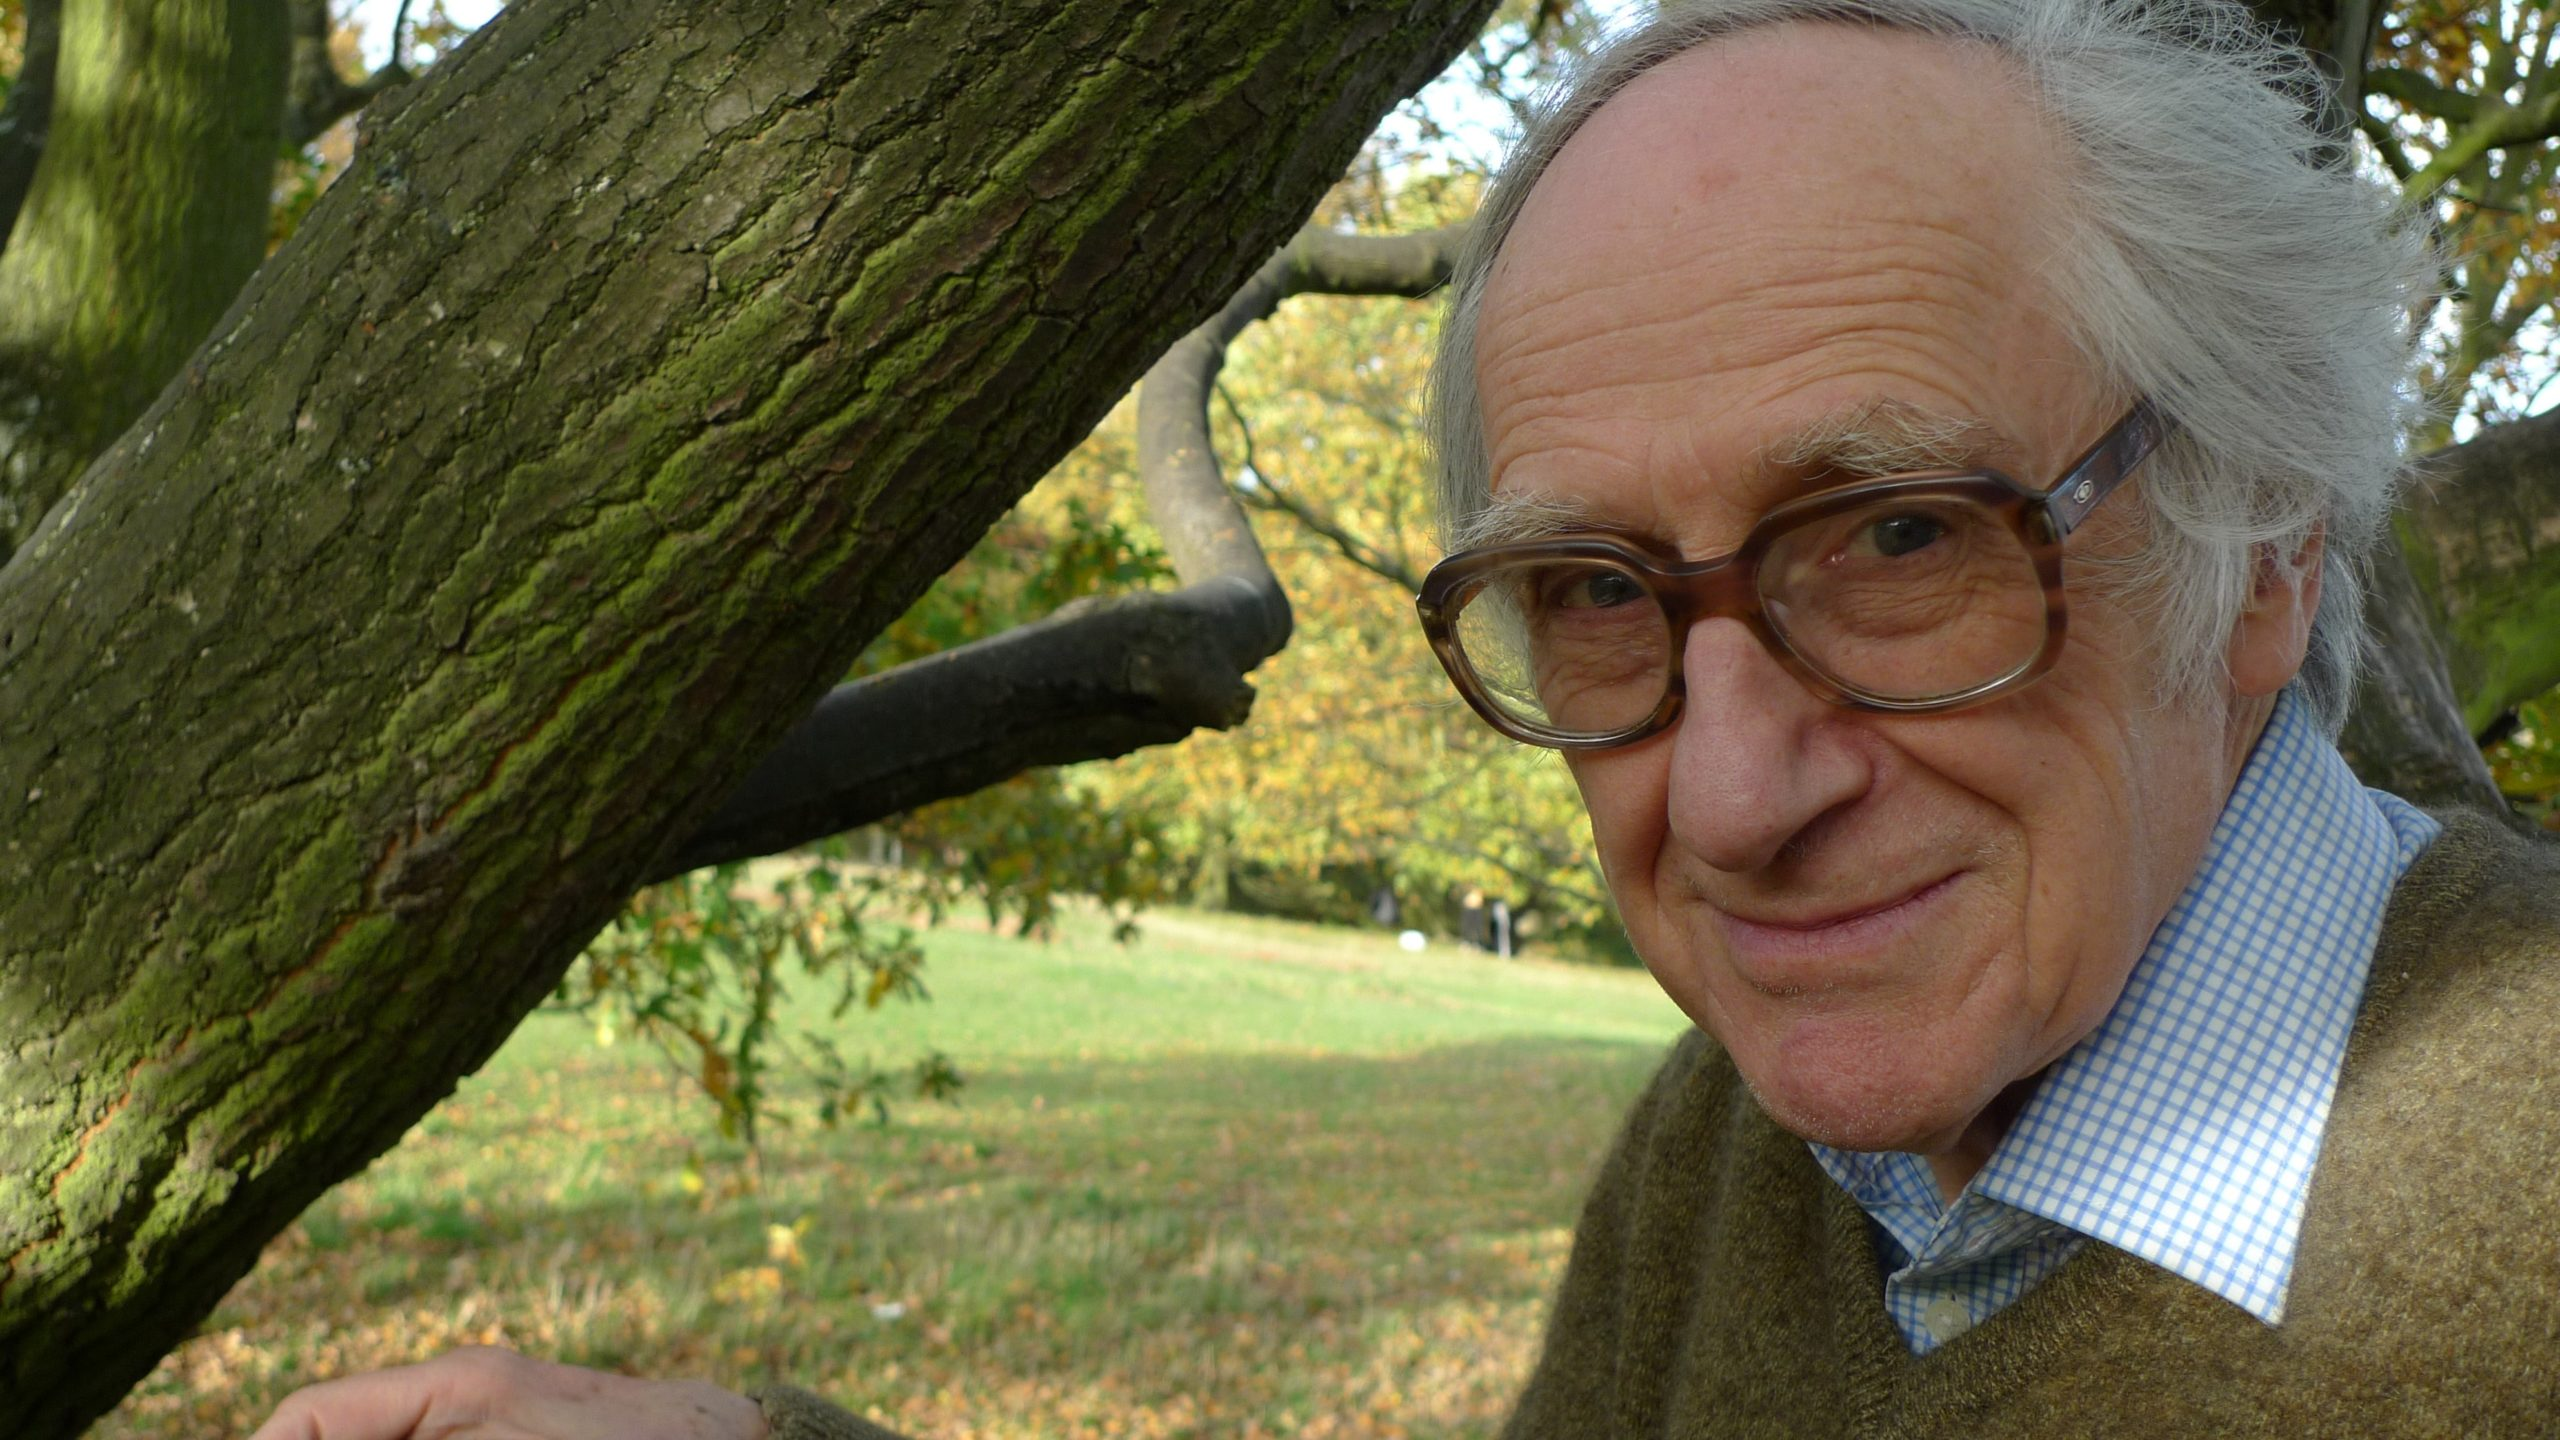 Photograph of the late Dr. David Fleming in an oak tree. By Henrik Dahle, 4th November 2010.